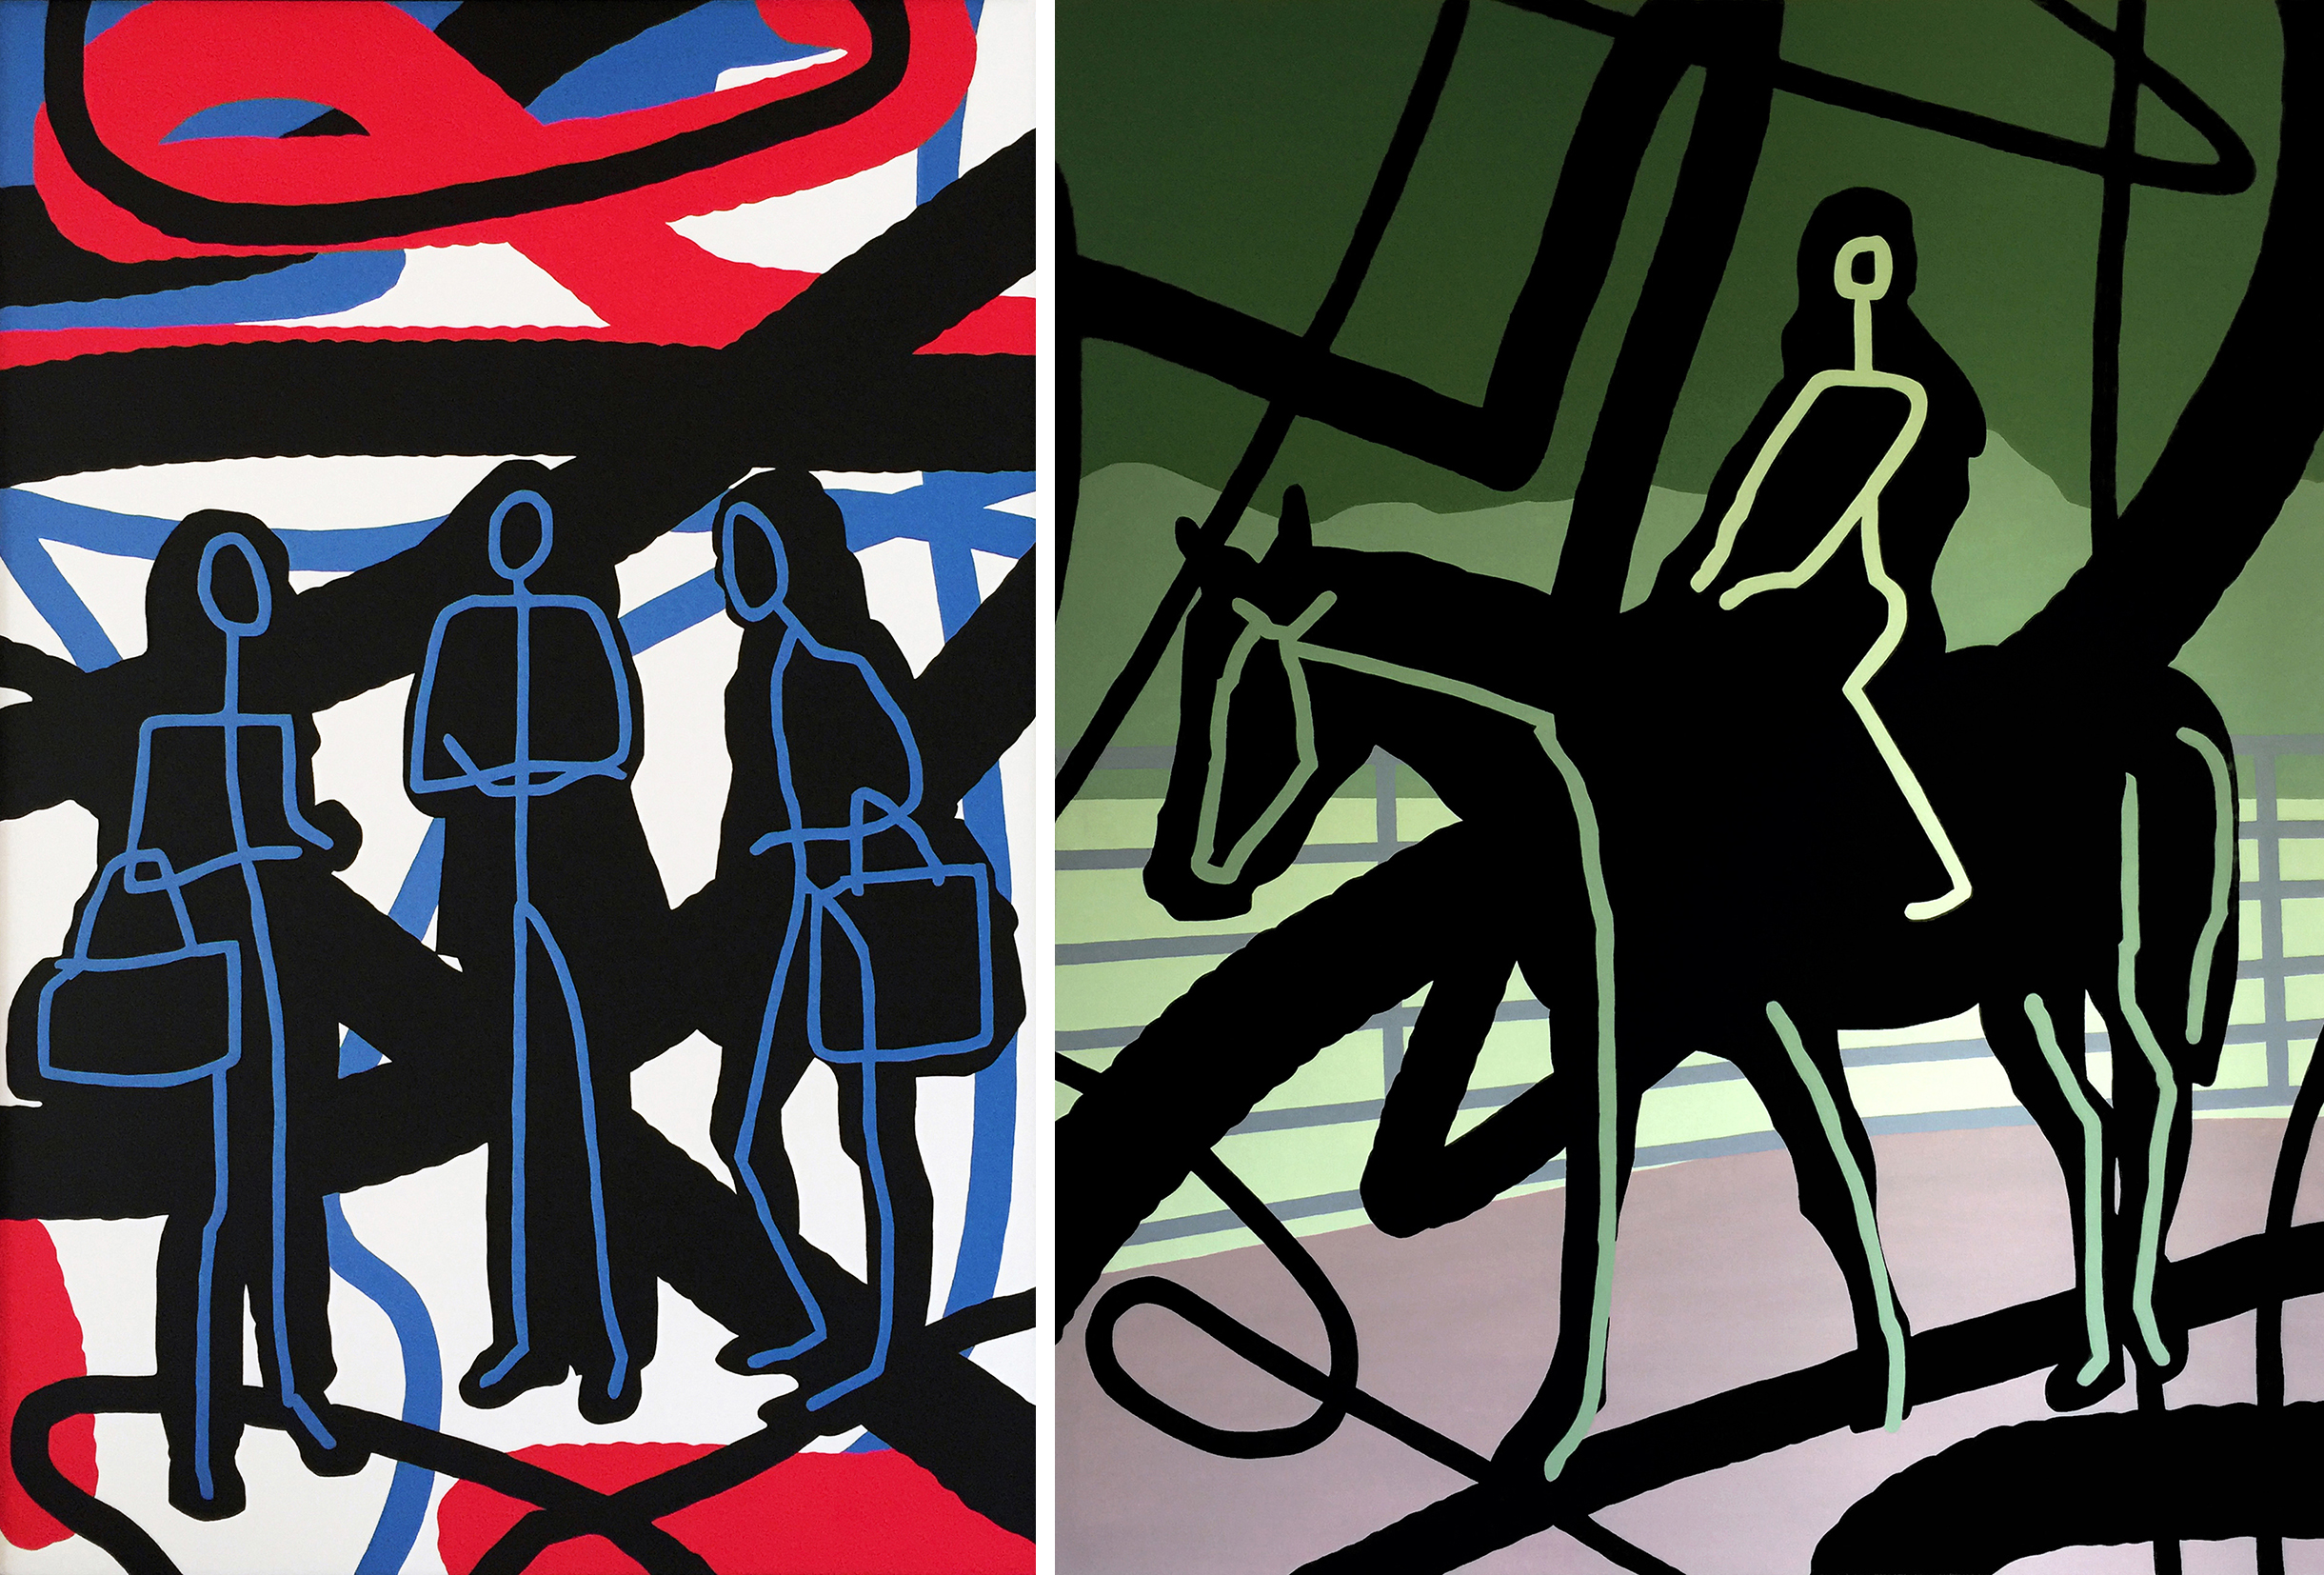 """Acrylic on stretched canvas, SHOPPING, 48"""" x 72""""                     Acrylic on stretched canvas,  HORSE RIDER, 40"""" x 60"""""""